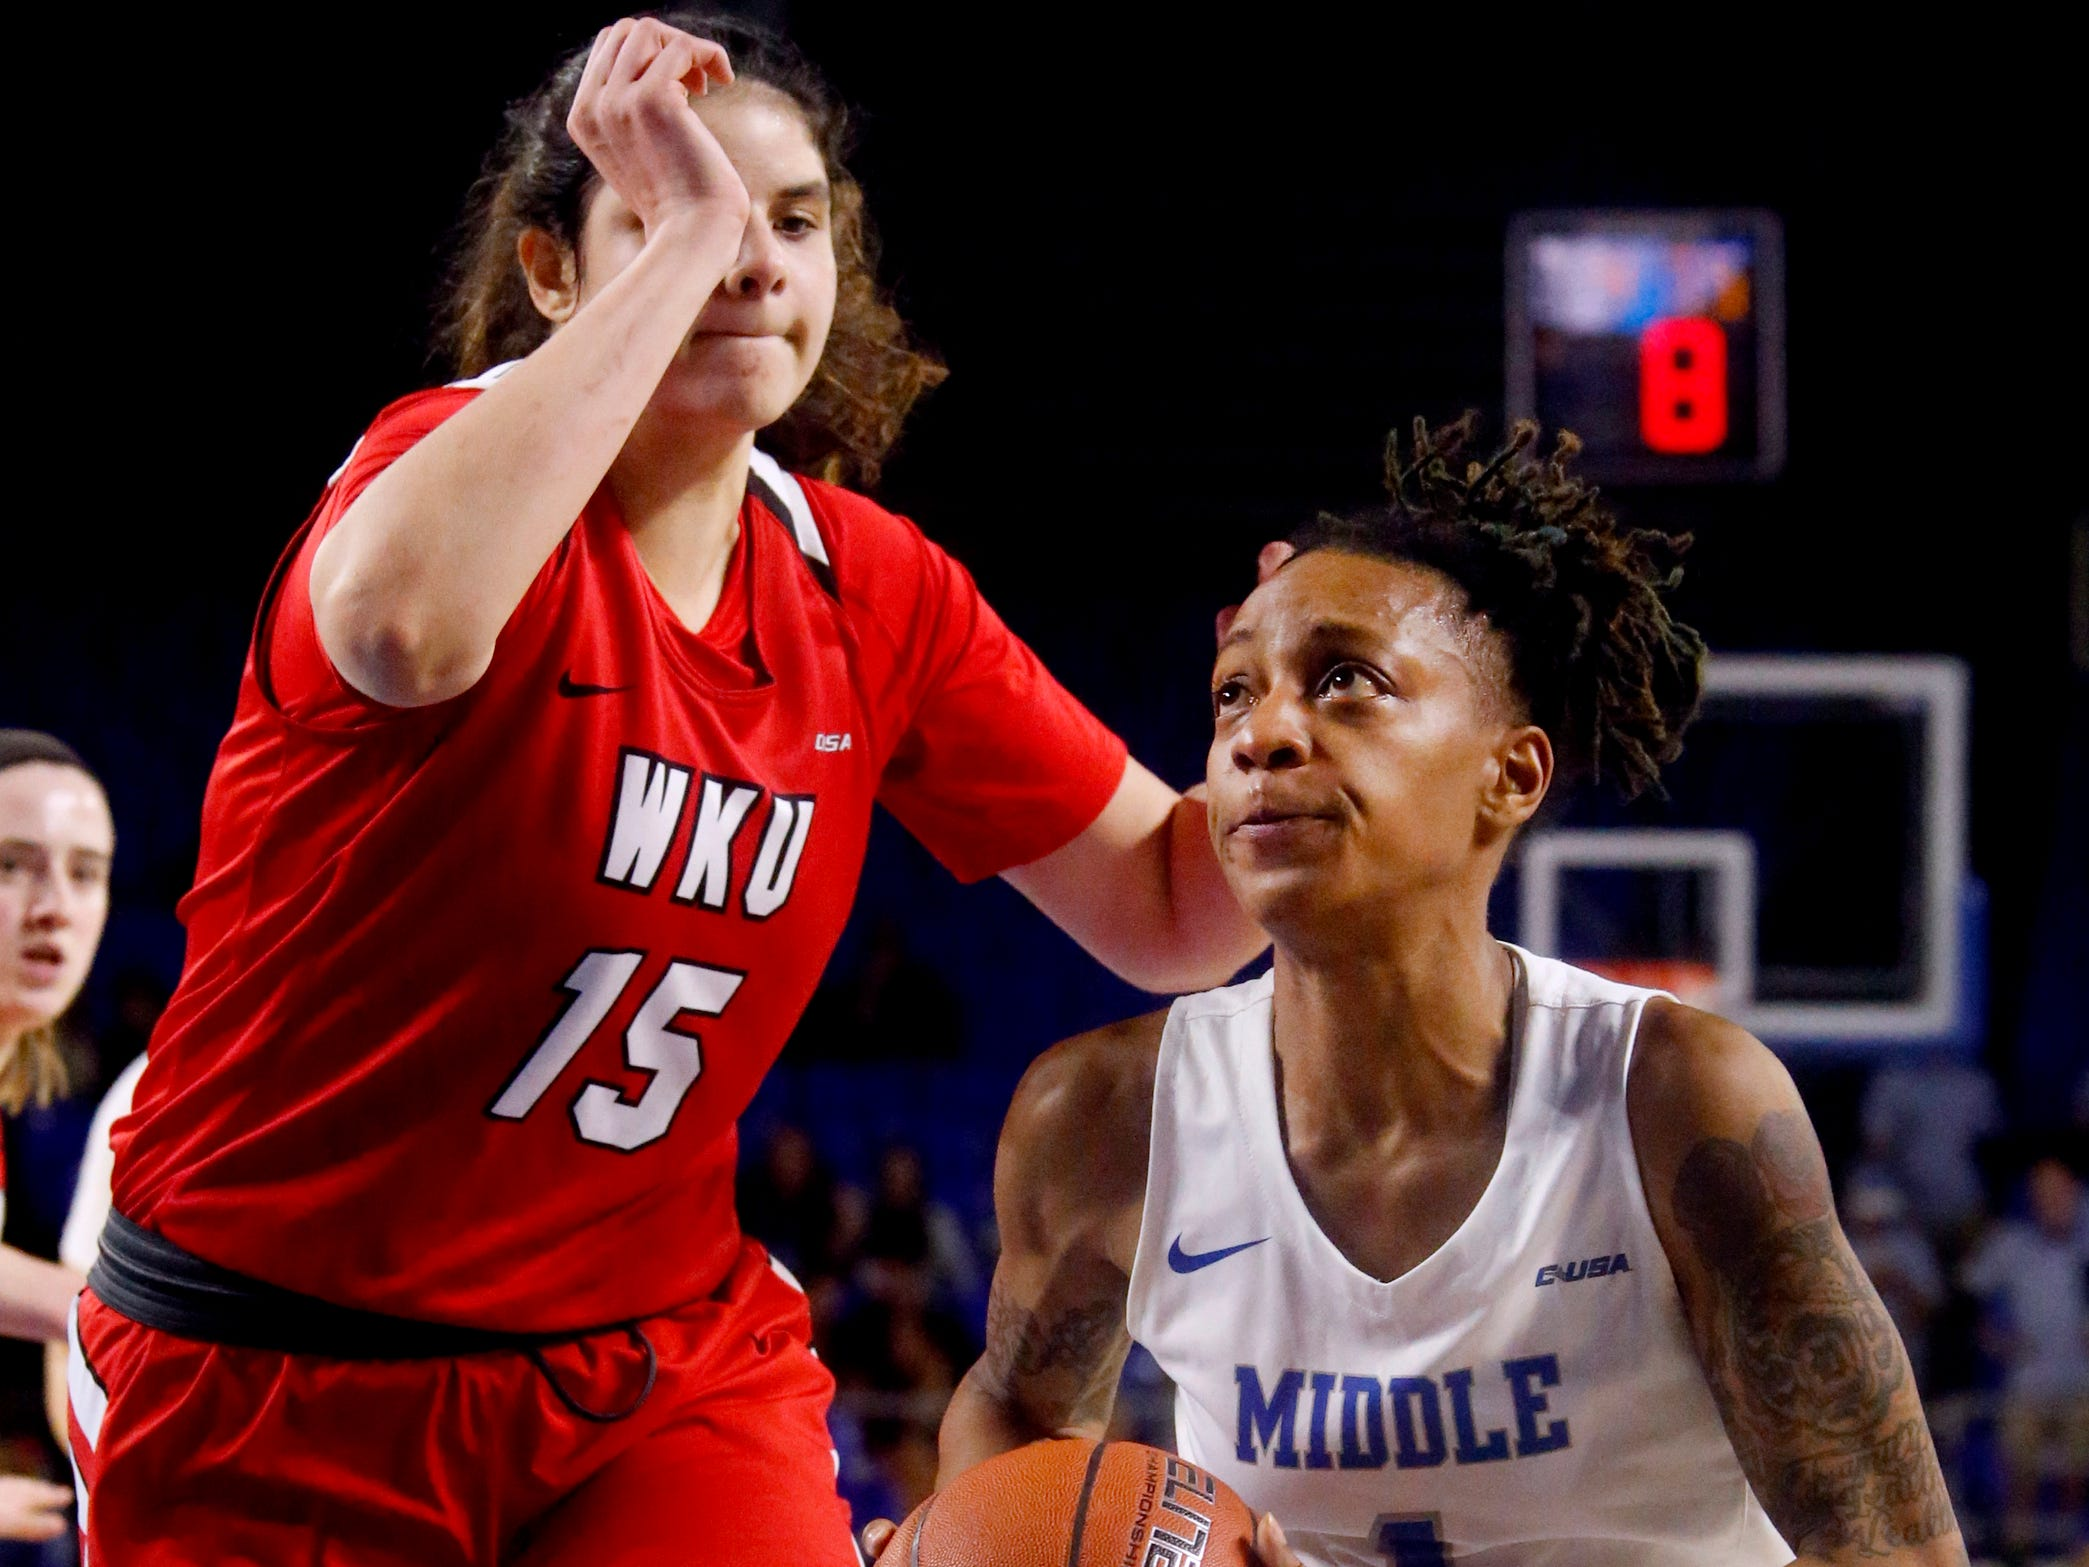 MTSU's guard A'Queen Hayes (1) drives to the basket as Western's forward Raneem Elgedawy (15) moves in to guard her on Thursday, Feb. 14, 2019.